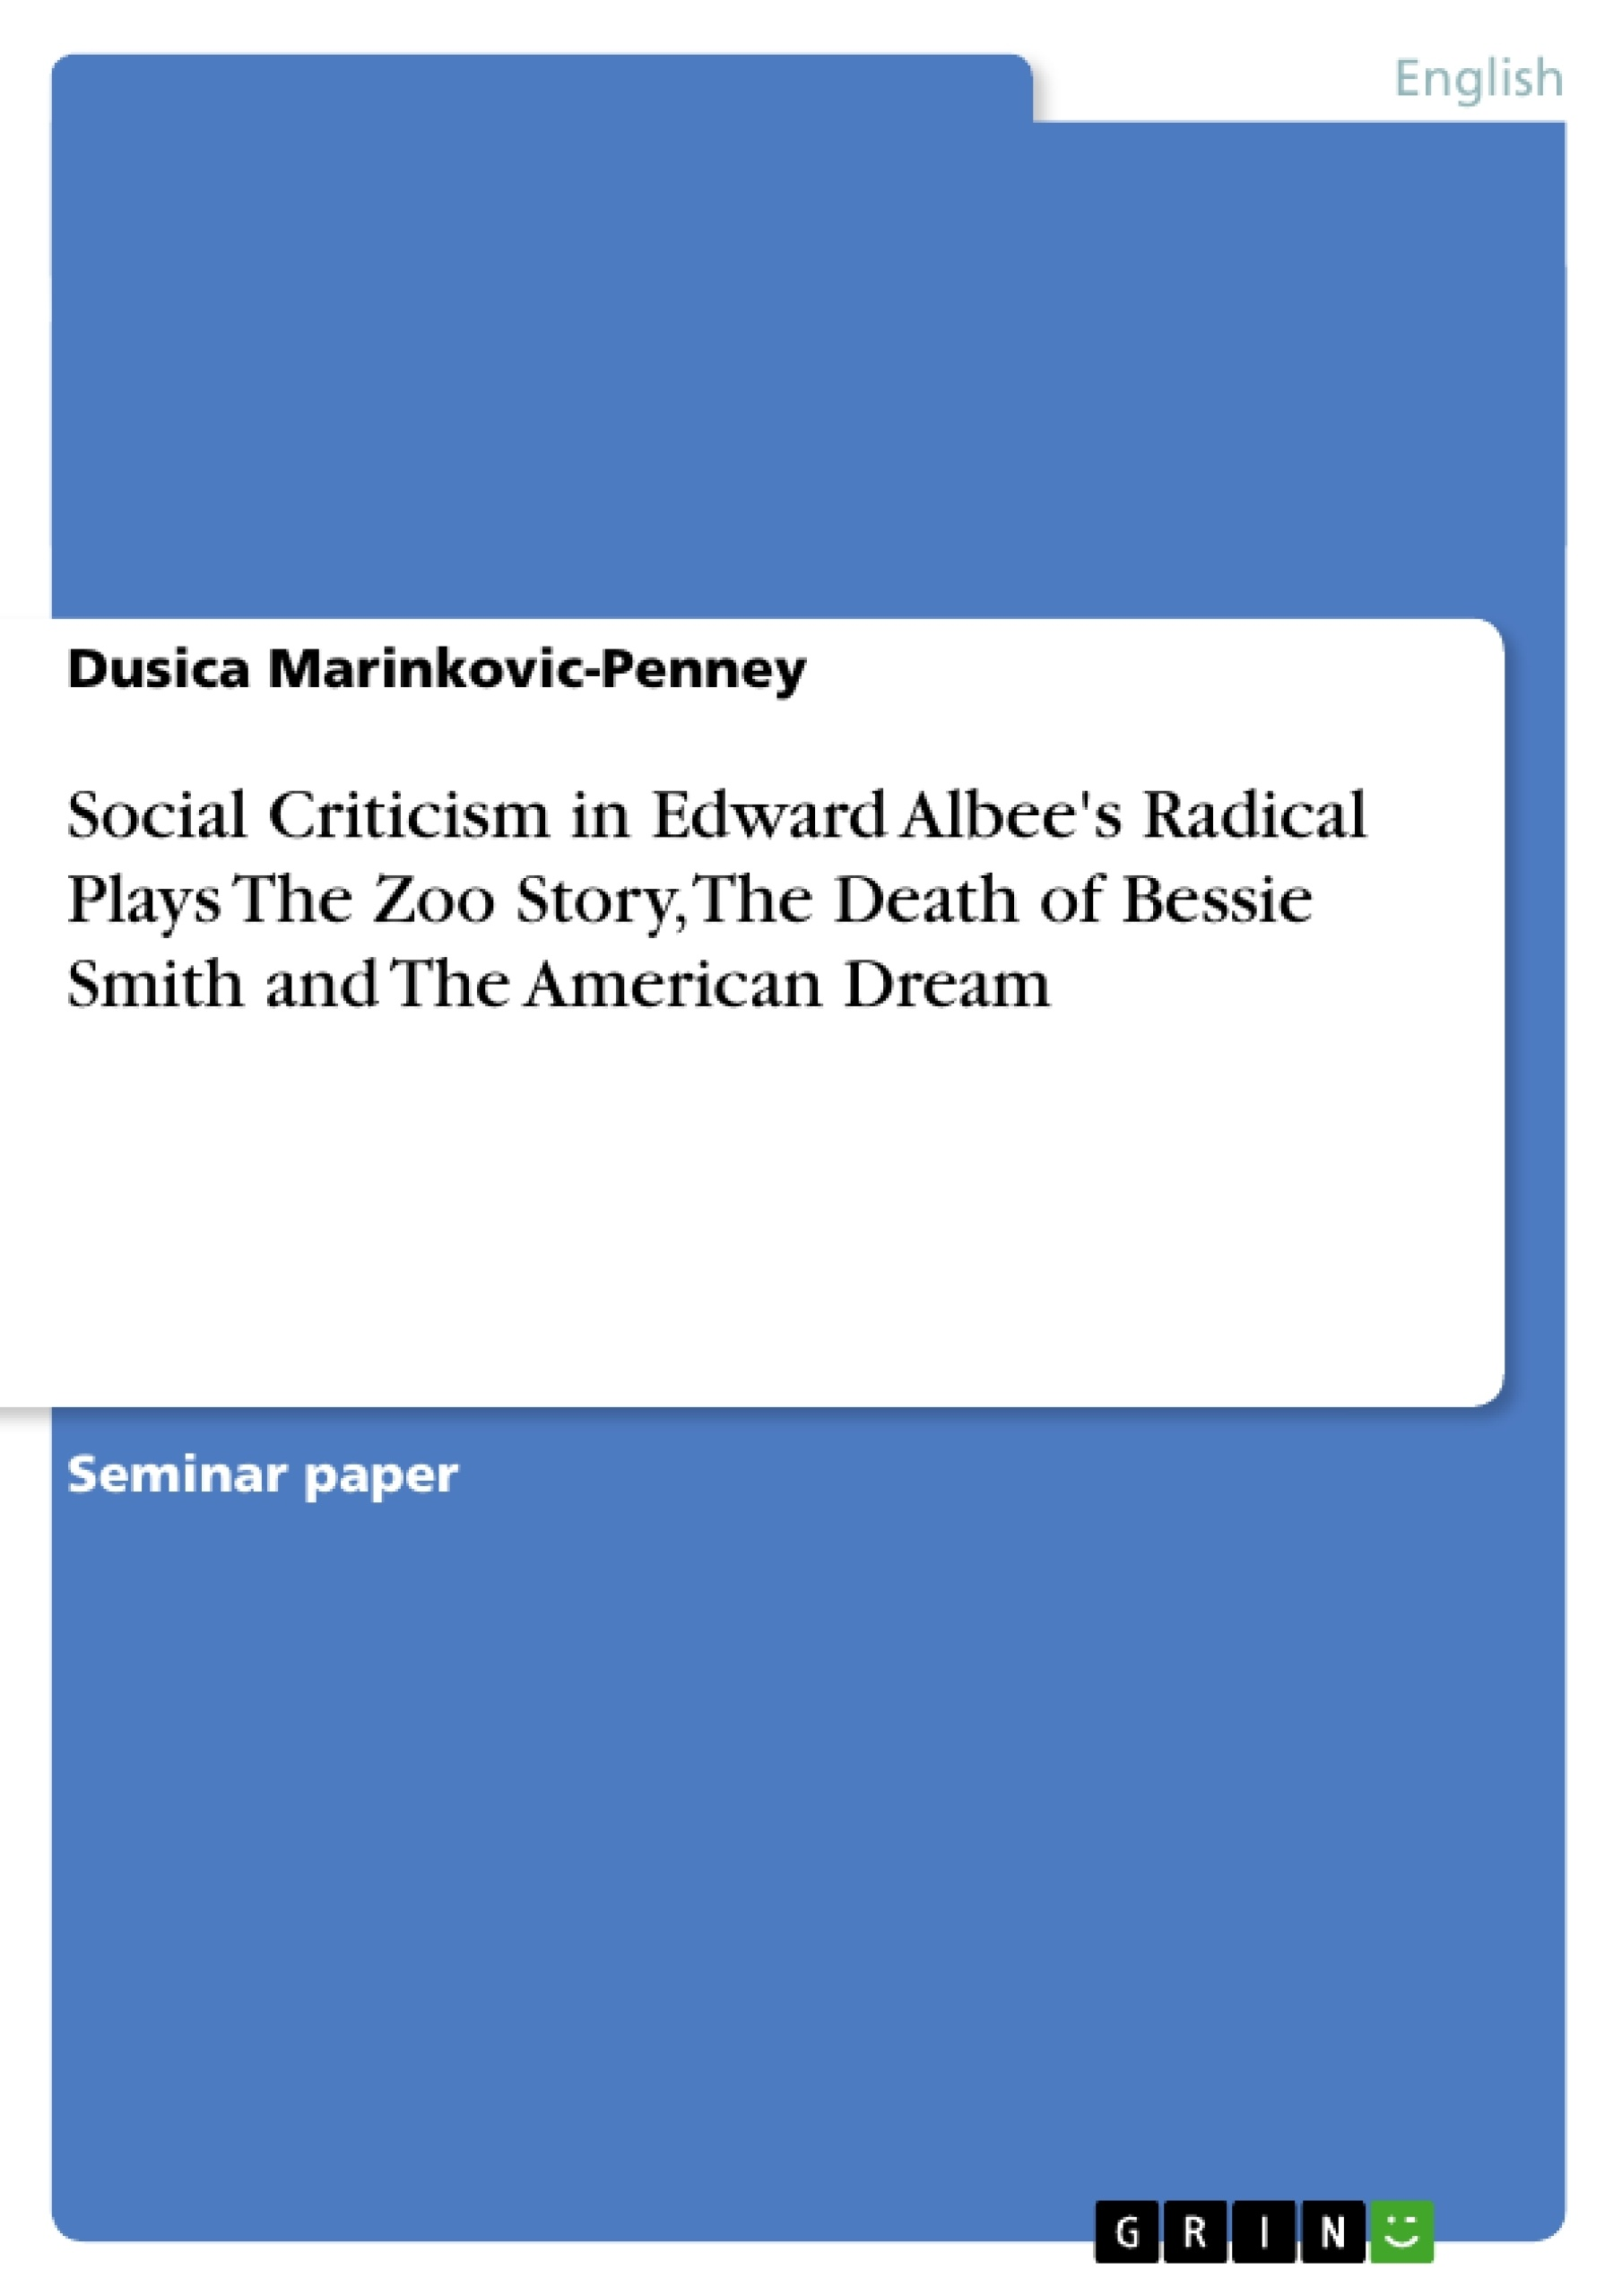 the analysis of the zoo story essay The zoo story by edward albee - a cross-section of today's society - maria-elena ohle - pre-university paper - english - literature, works - publish your bachelor's or master's thesis.